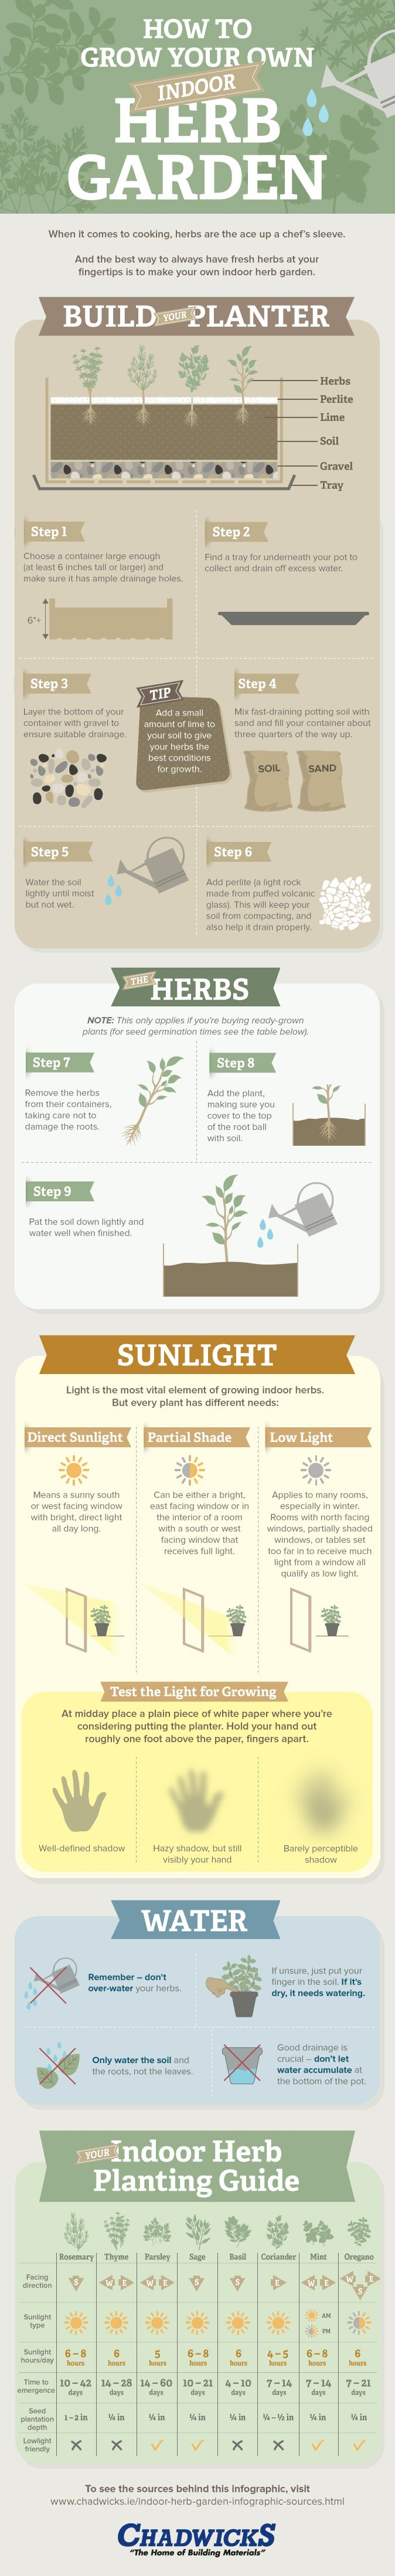 best 25 grow your own ideas on pinterest gardening calendar